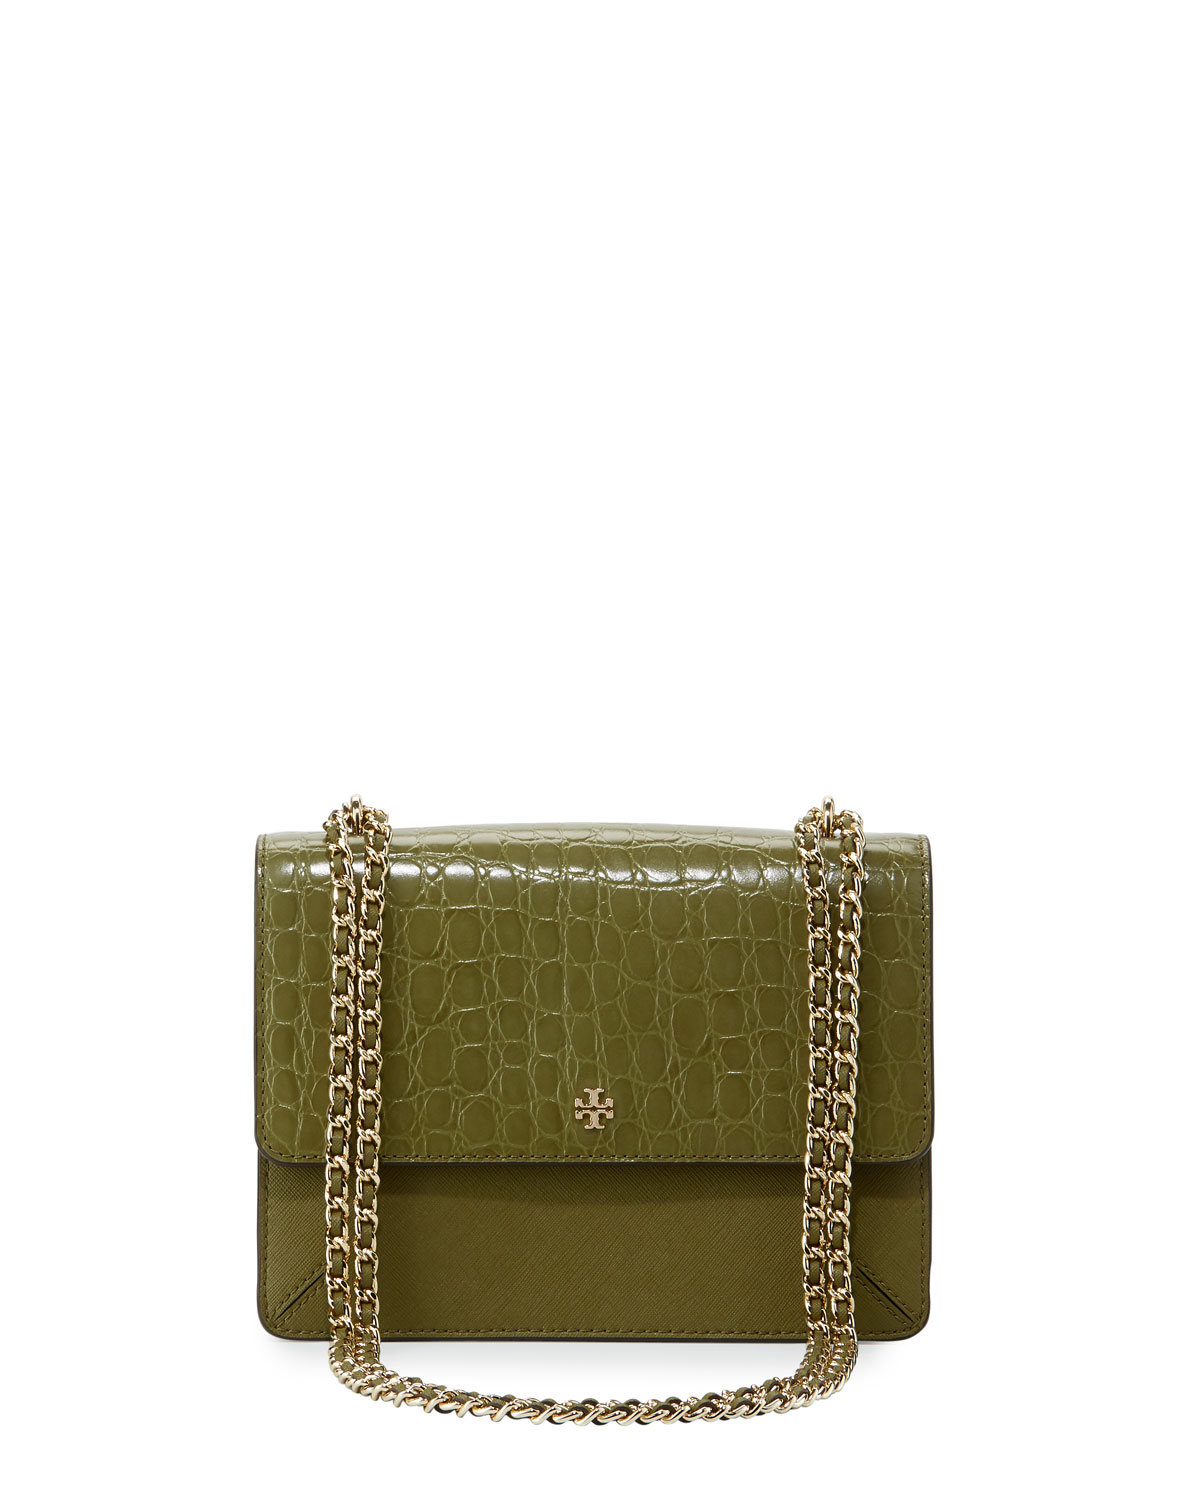 be9965d7a6dc Tory Burch Robinson Crocodile-Embossed Convertible Shoulder Bag ...